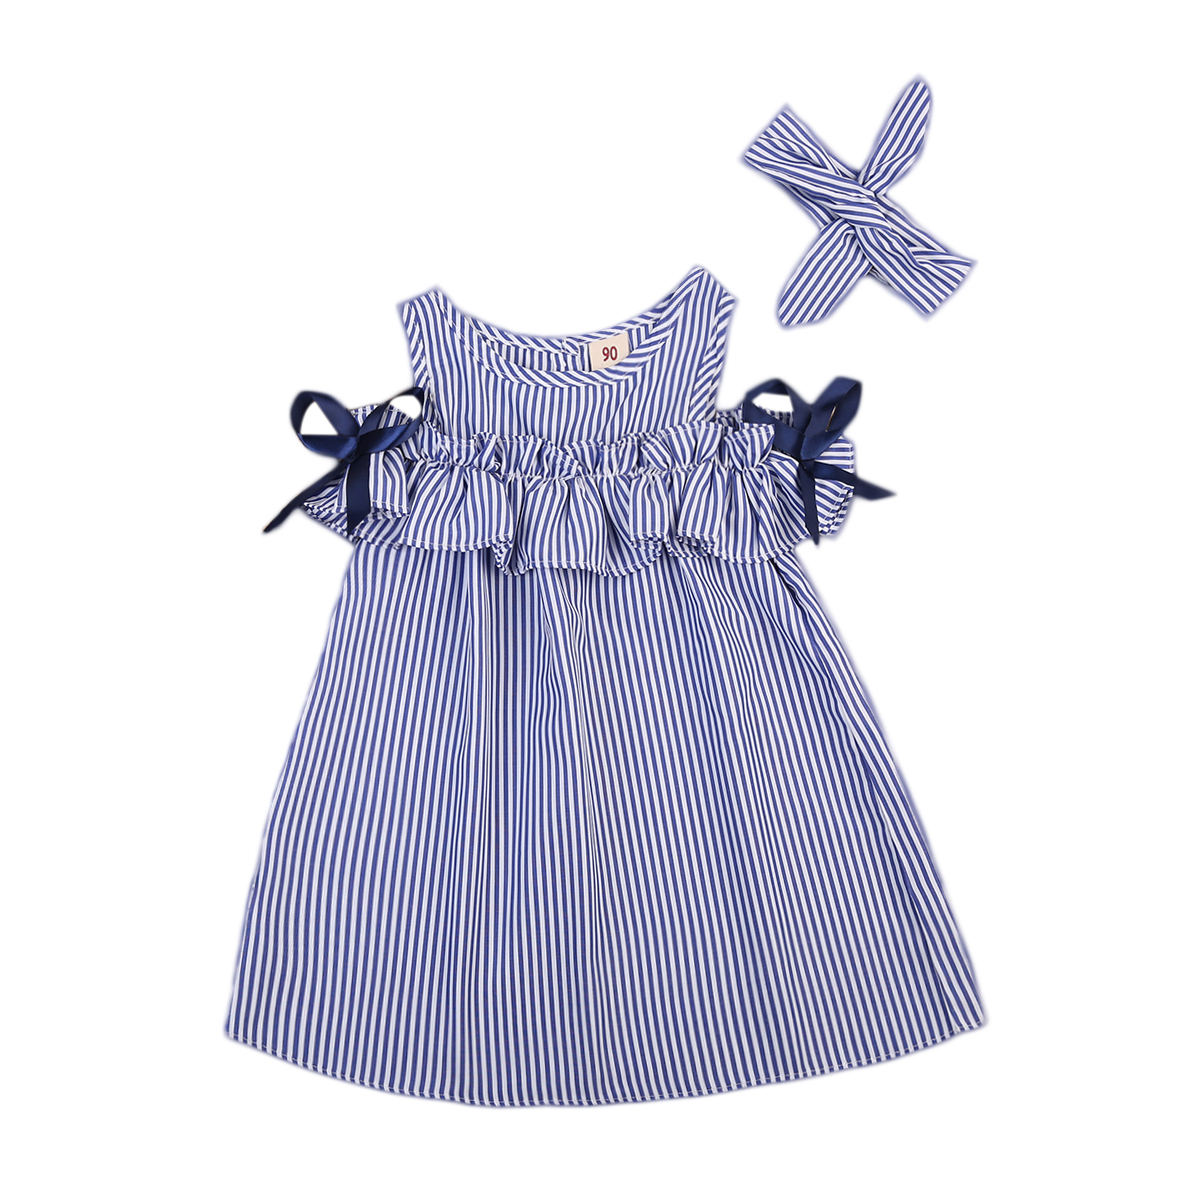 Blue Striped Dresses Fashion Kids Baby Girls Off Shoulder Floral Tops bowknot Stripe Dress Outfits